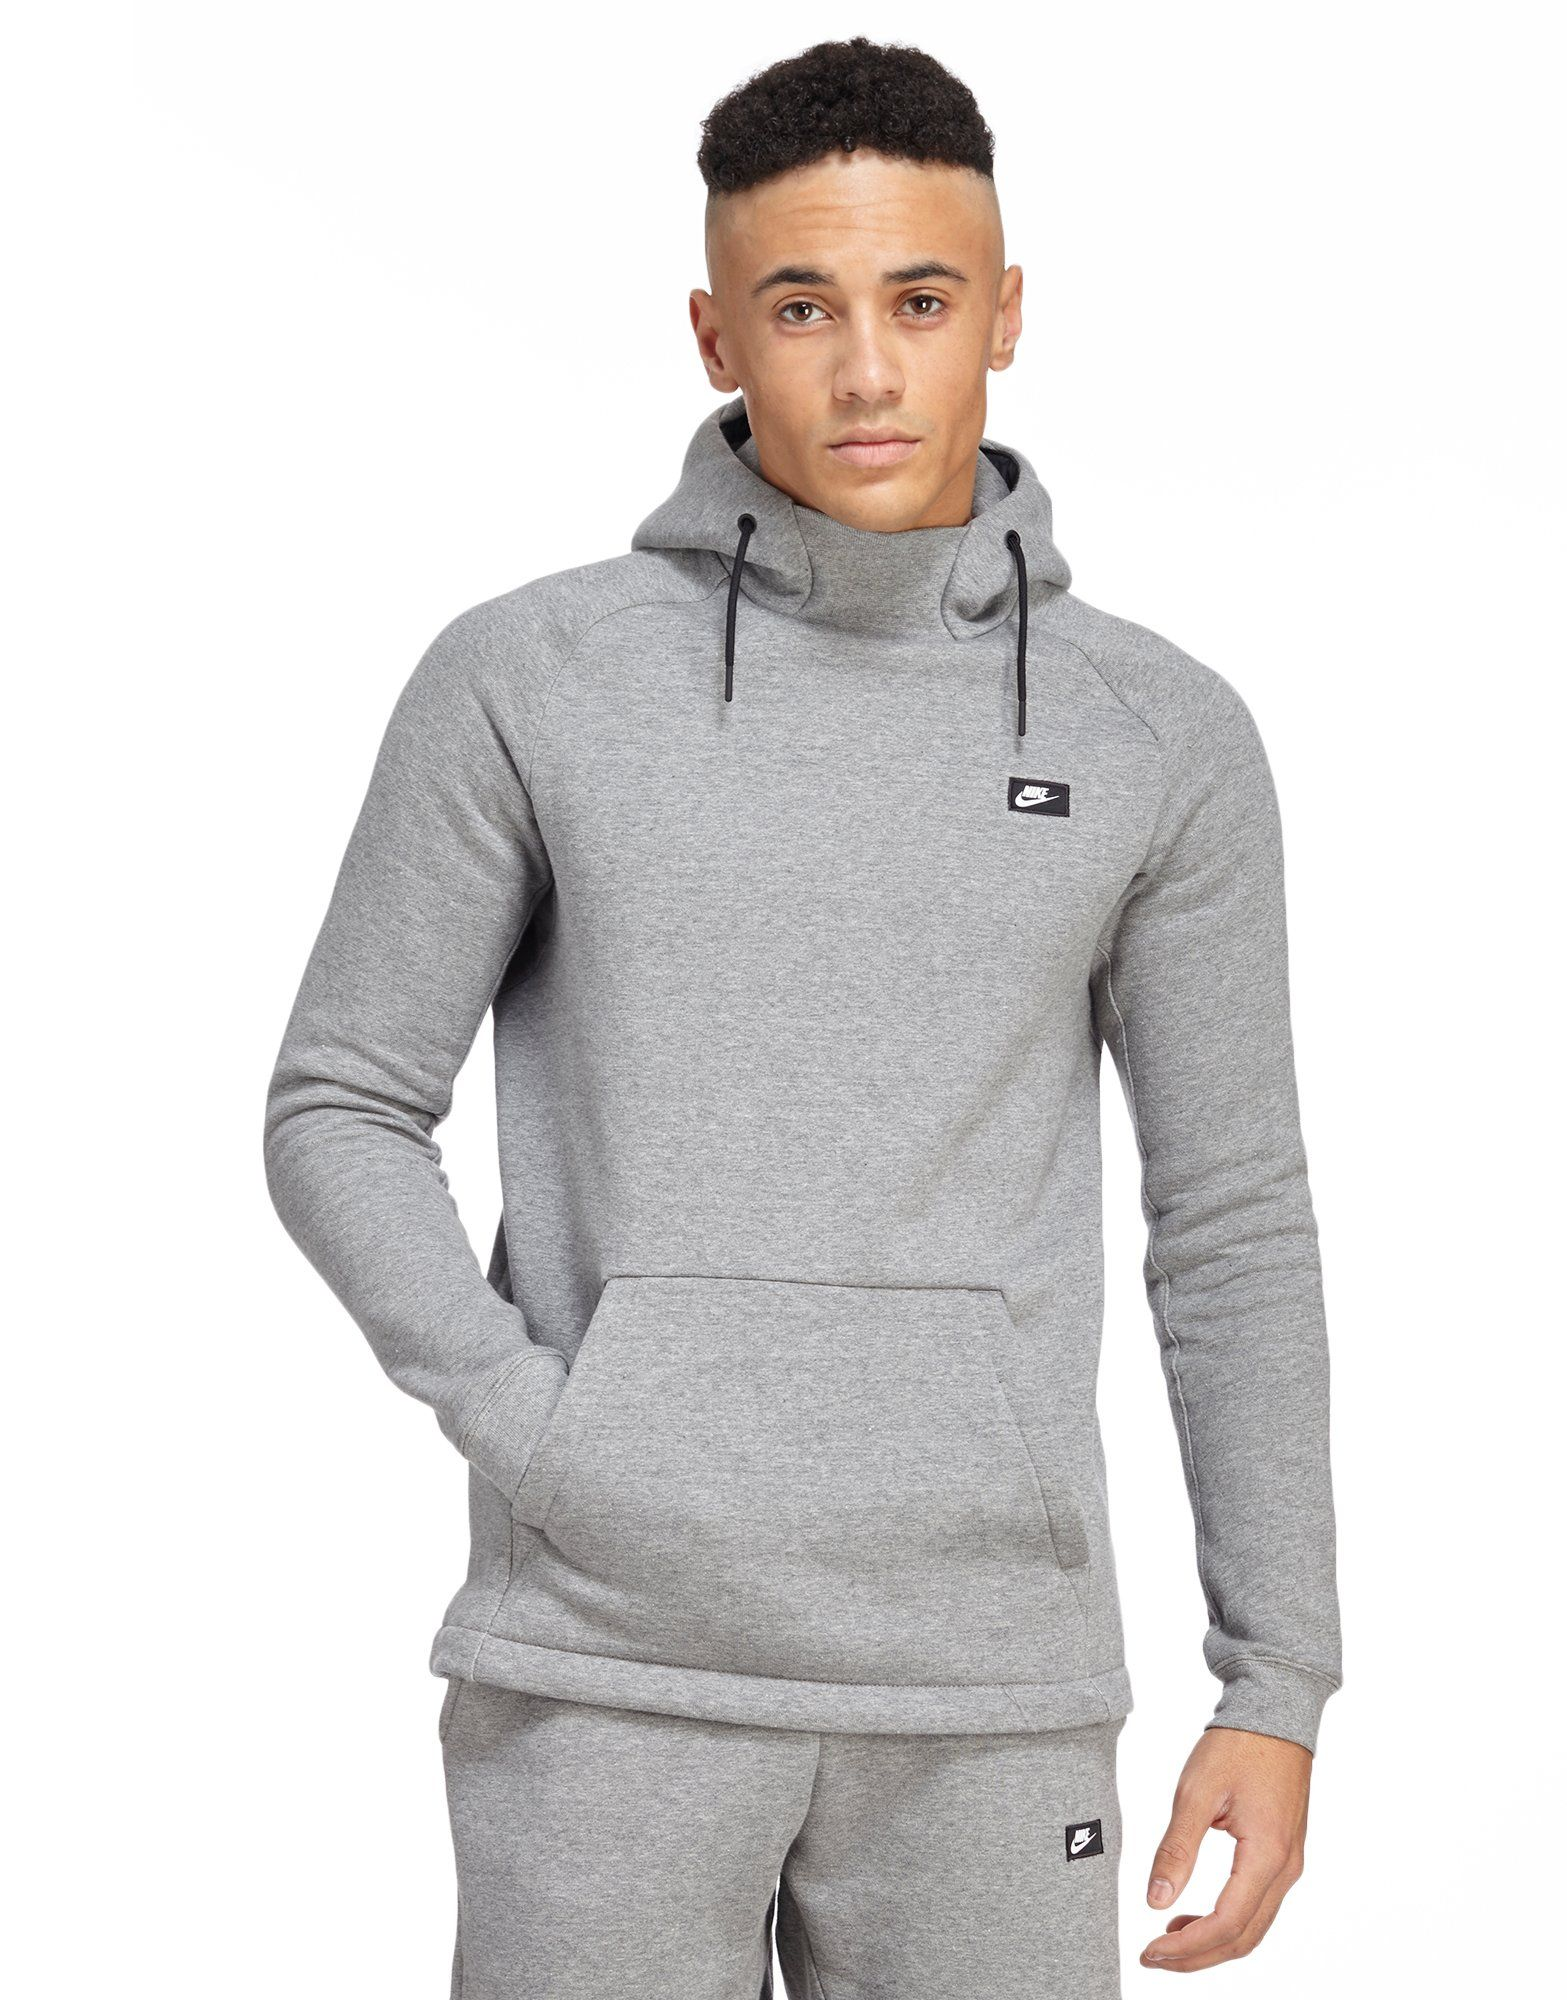 Mens Fashion Hoodies Uk